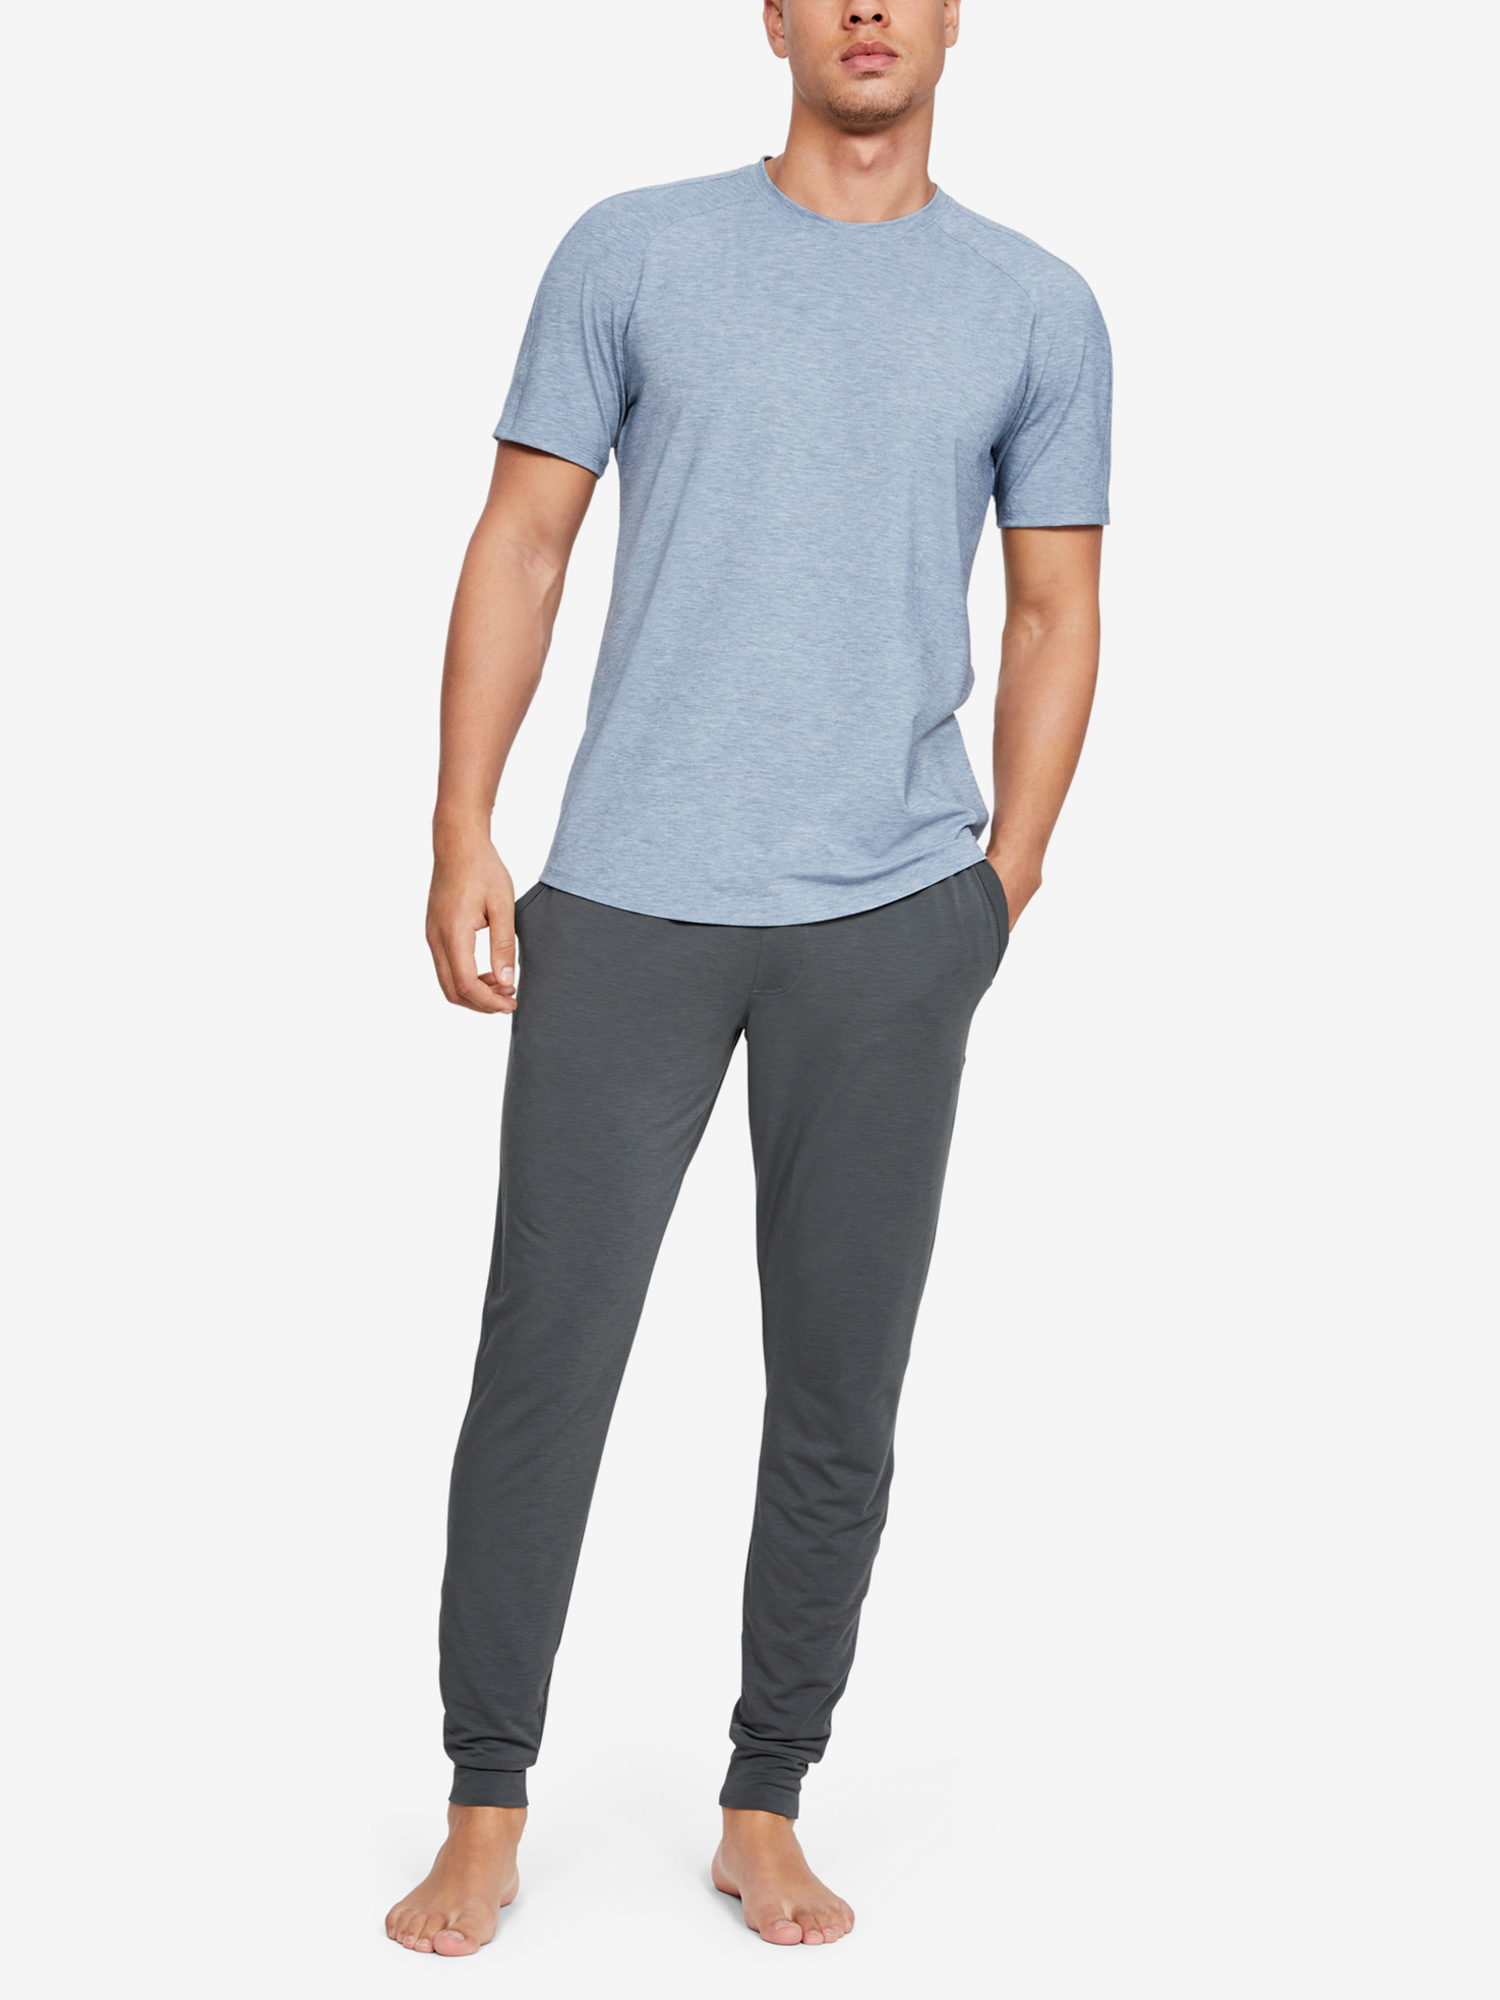 Tepláky Under Armour Recovery Sleepwear Jogger-Gry (5)